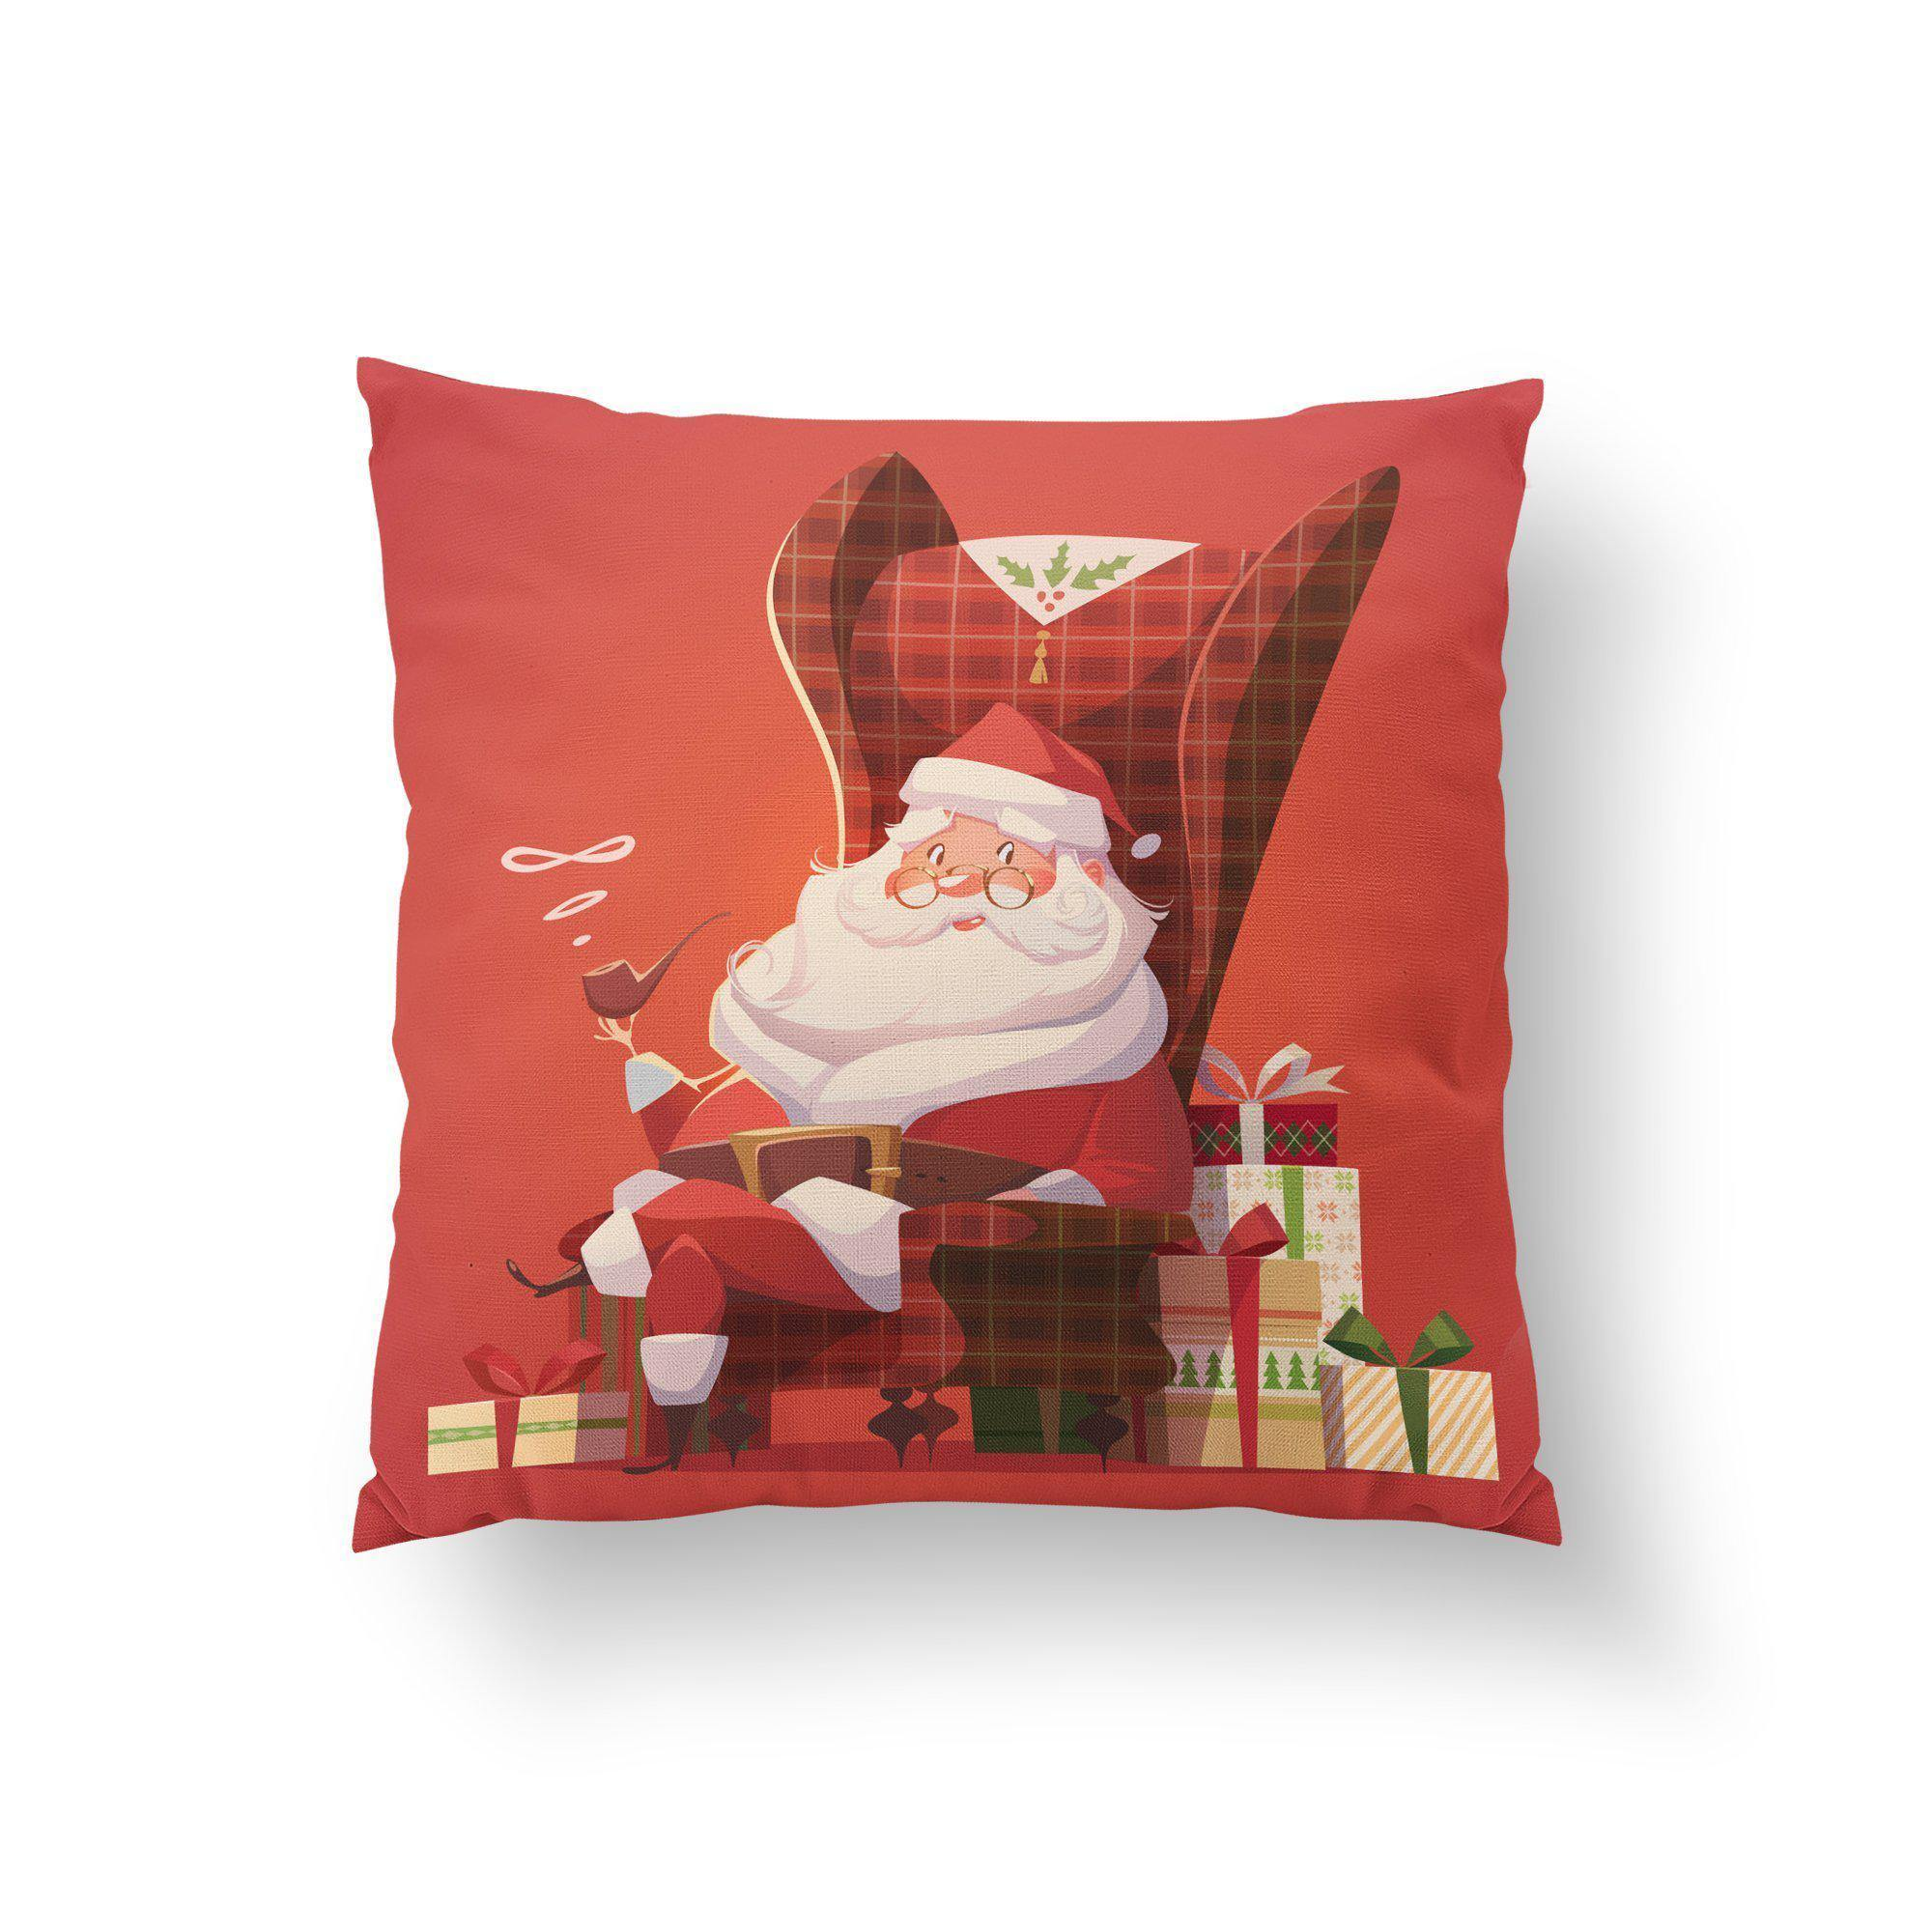 Santa's Pipe Throw Pillow - Pillow Covers - W.FRANCIS